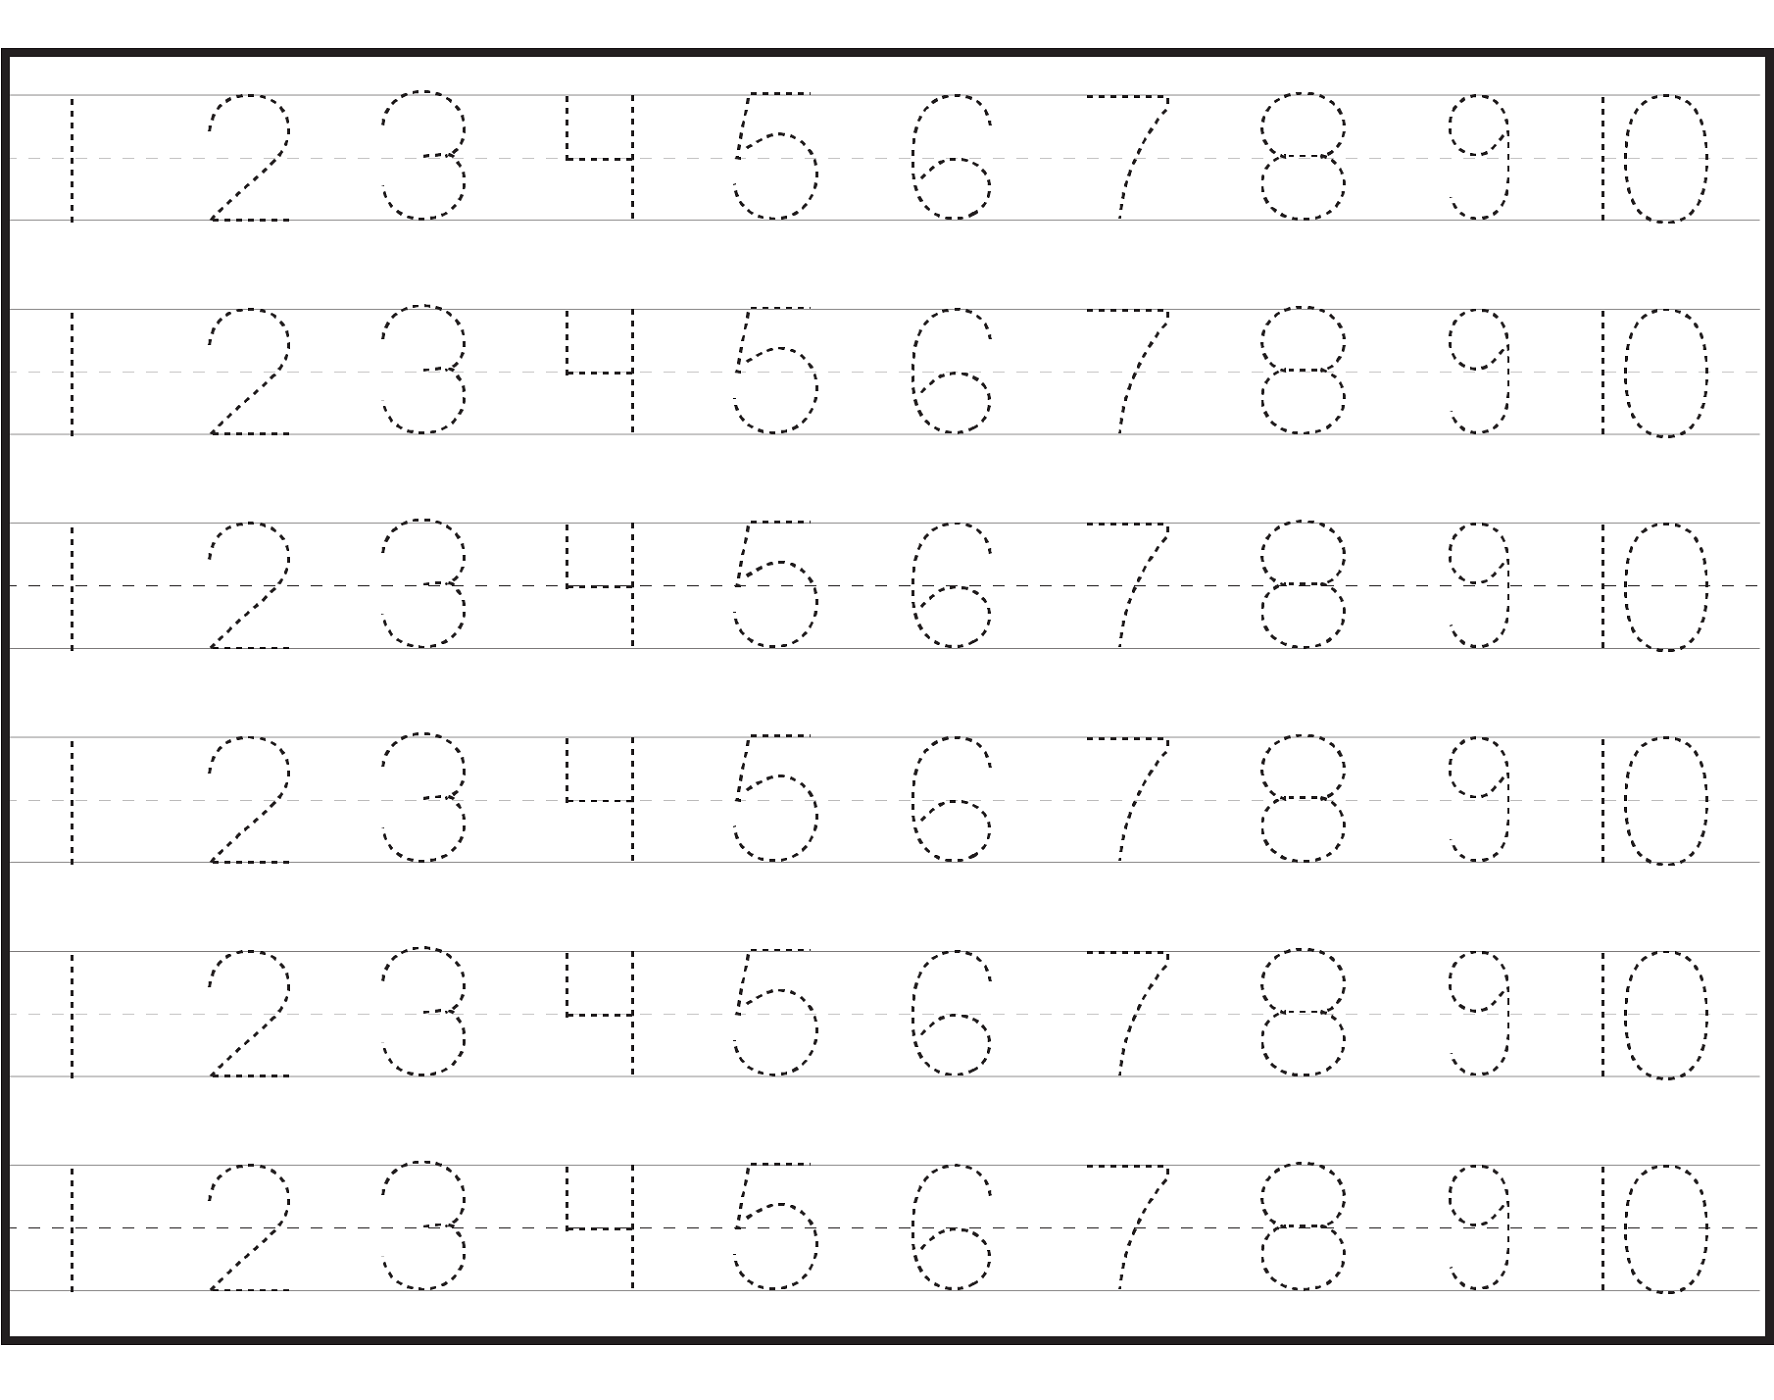 Worksheets Pre K Worksheets pre k worksheets number activity shelter numbers numbers